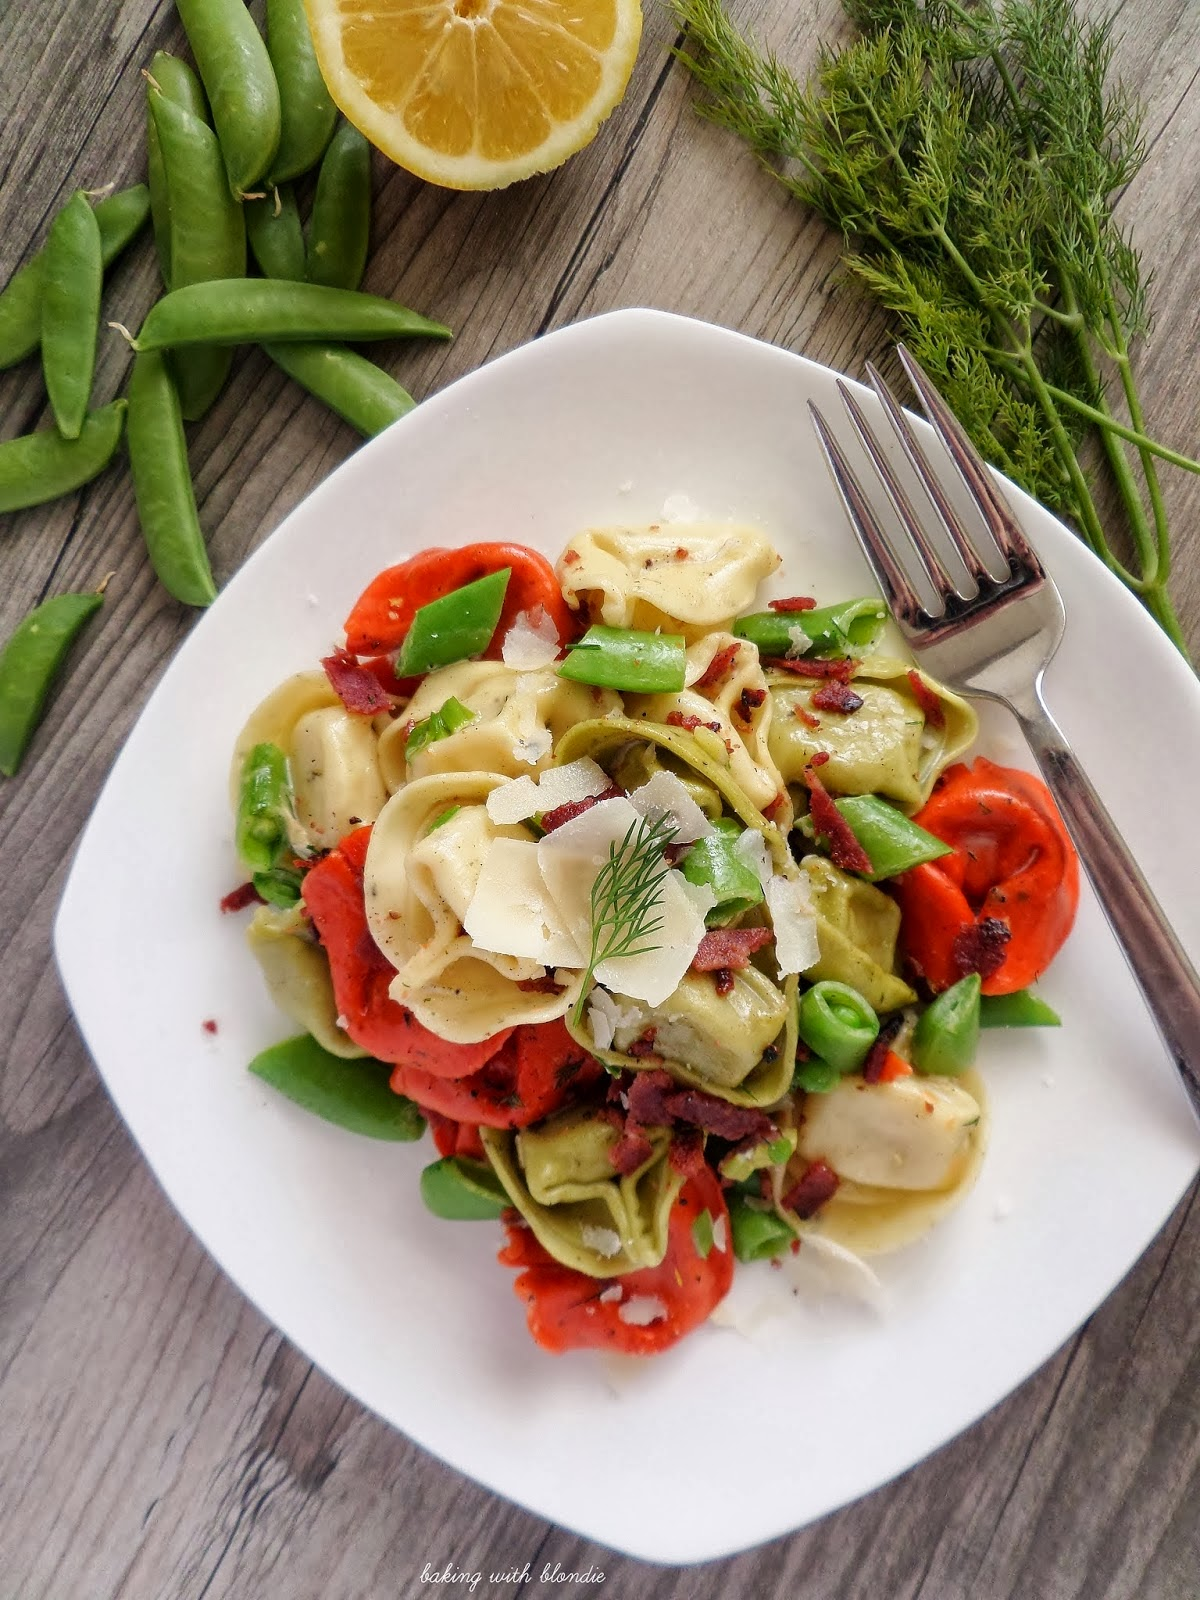 Cheese Tortellini with Snap Peas in a Lemon Dill Cream Sauce